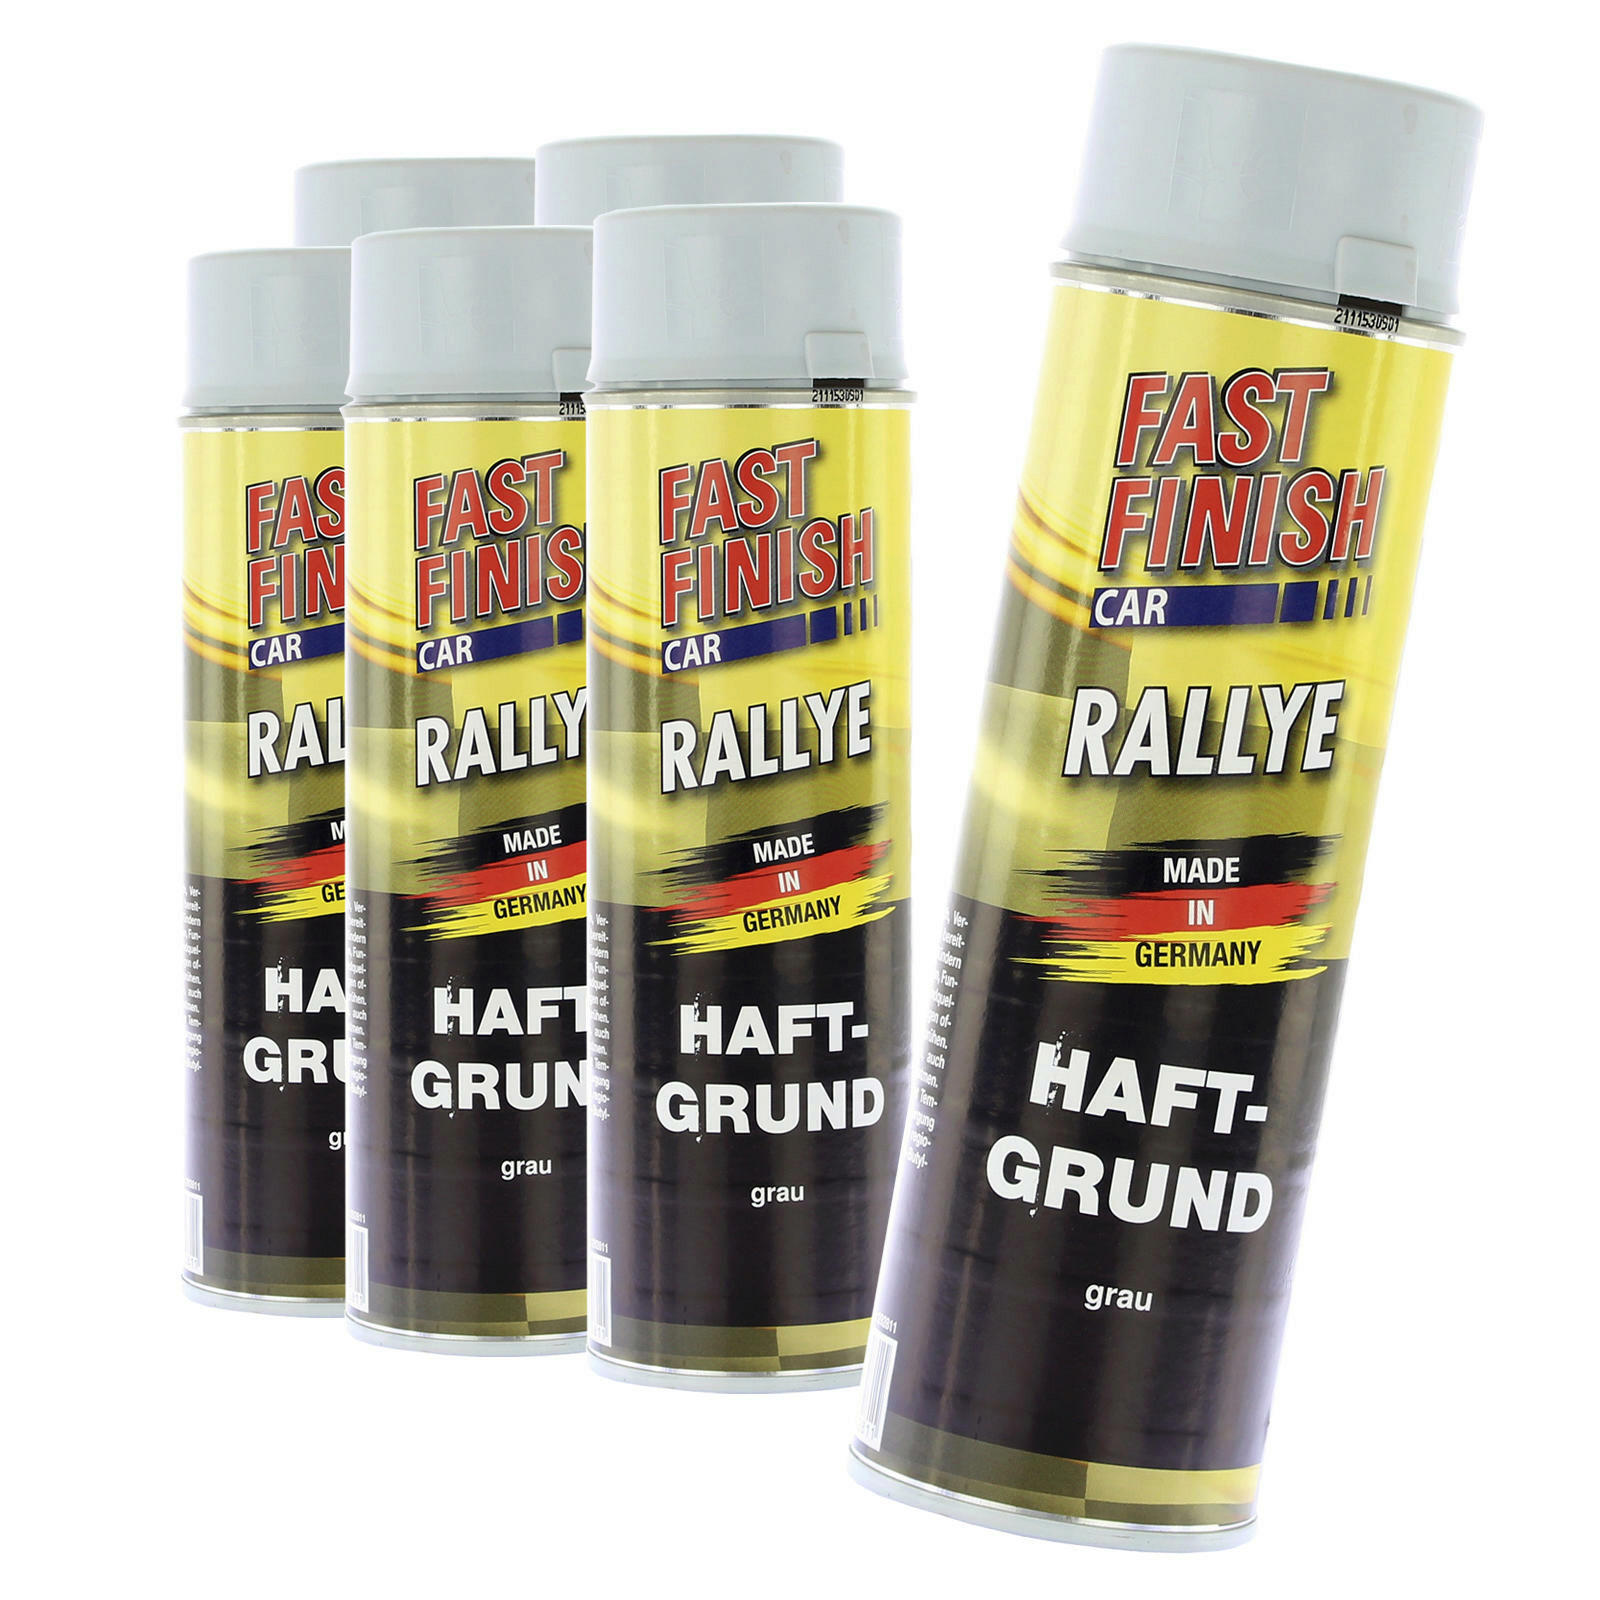 6x Fast Finish Haftgrund grau 500ml